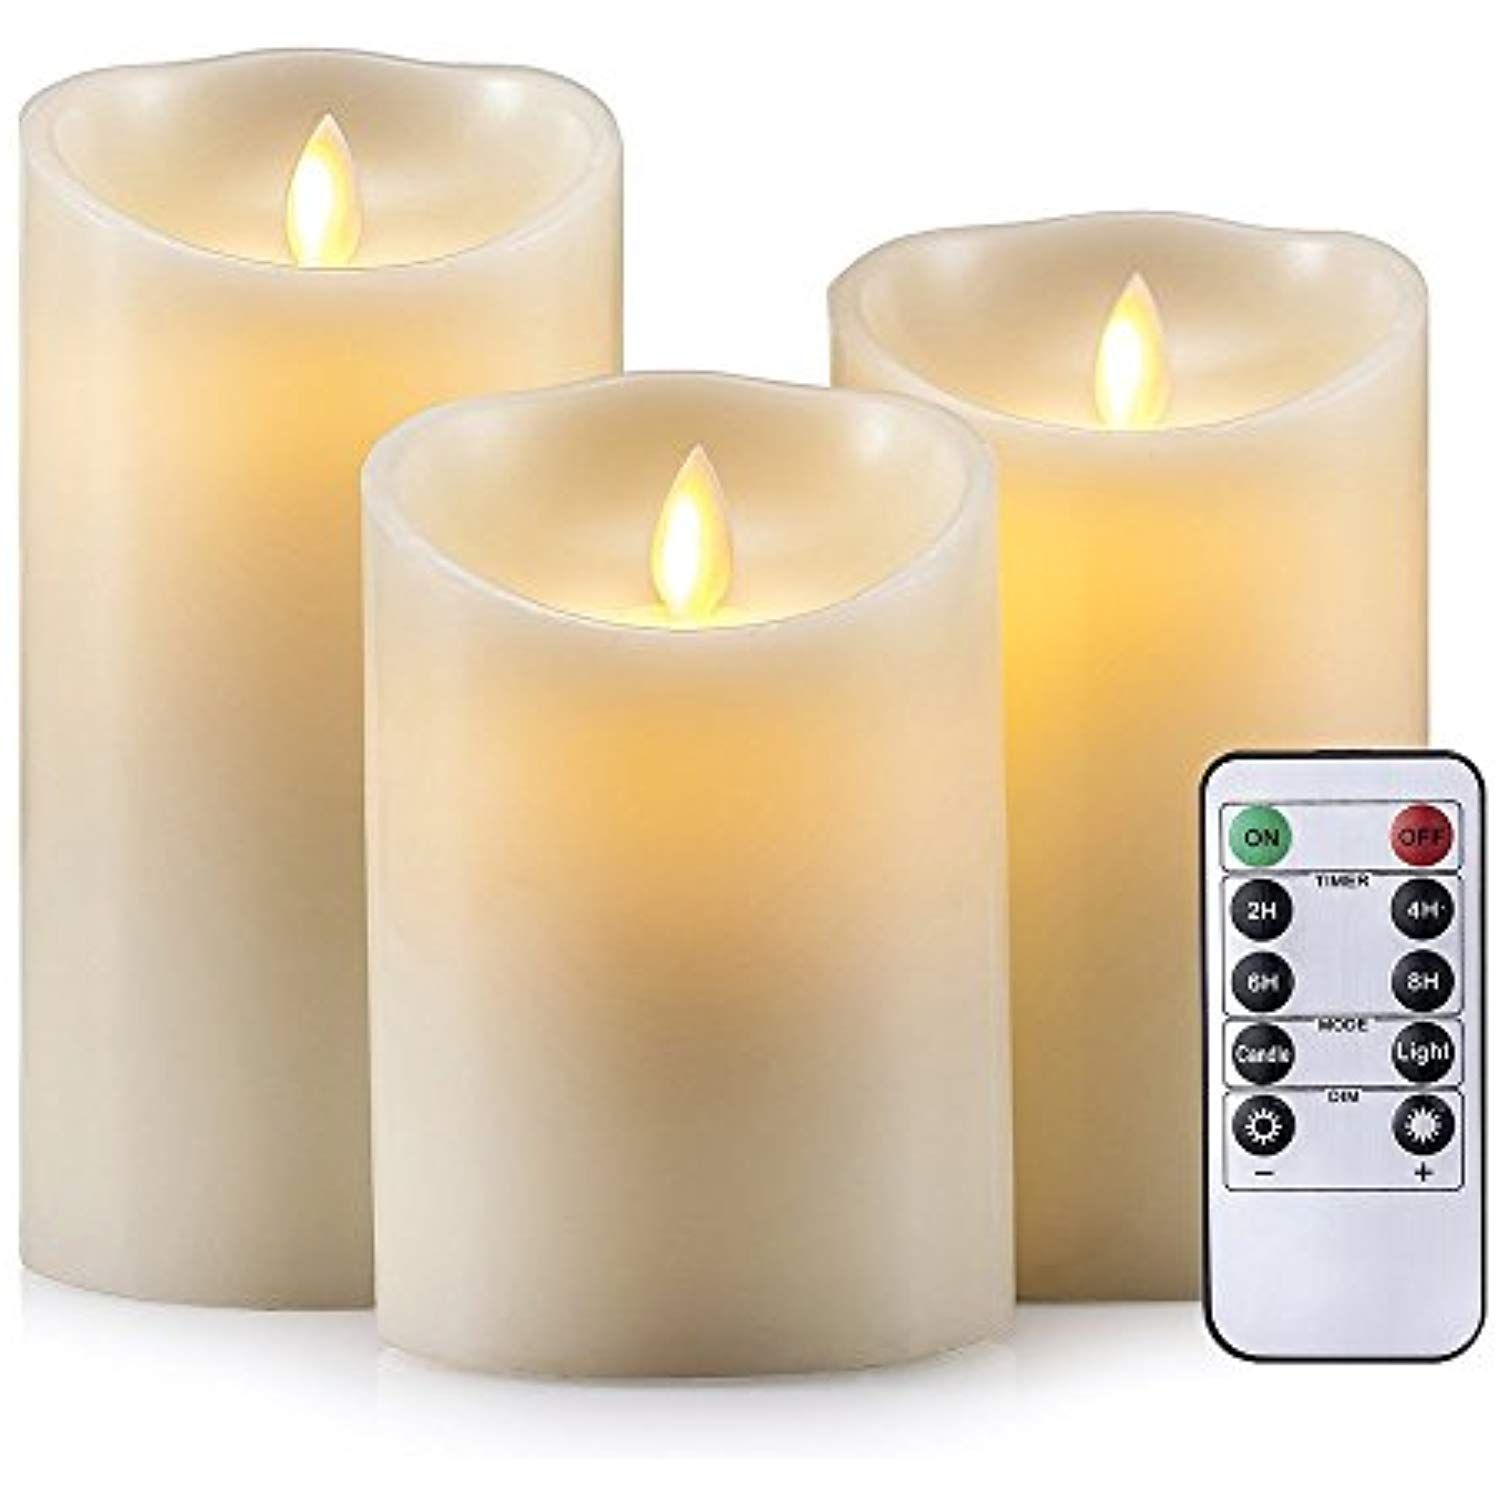 Air Zuker D Cell Flameless Candles Dancing Flame Wax Pillar Led Candle 500 Hours Lighting Use D Cell Battery No Flameless Candles Led Candles Novelty Candles